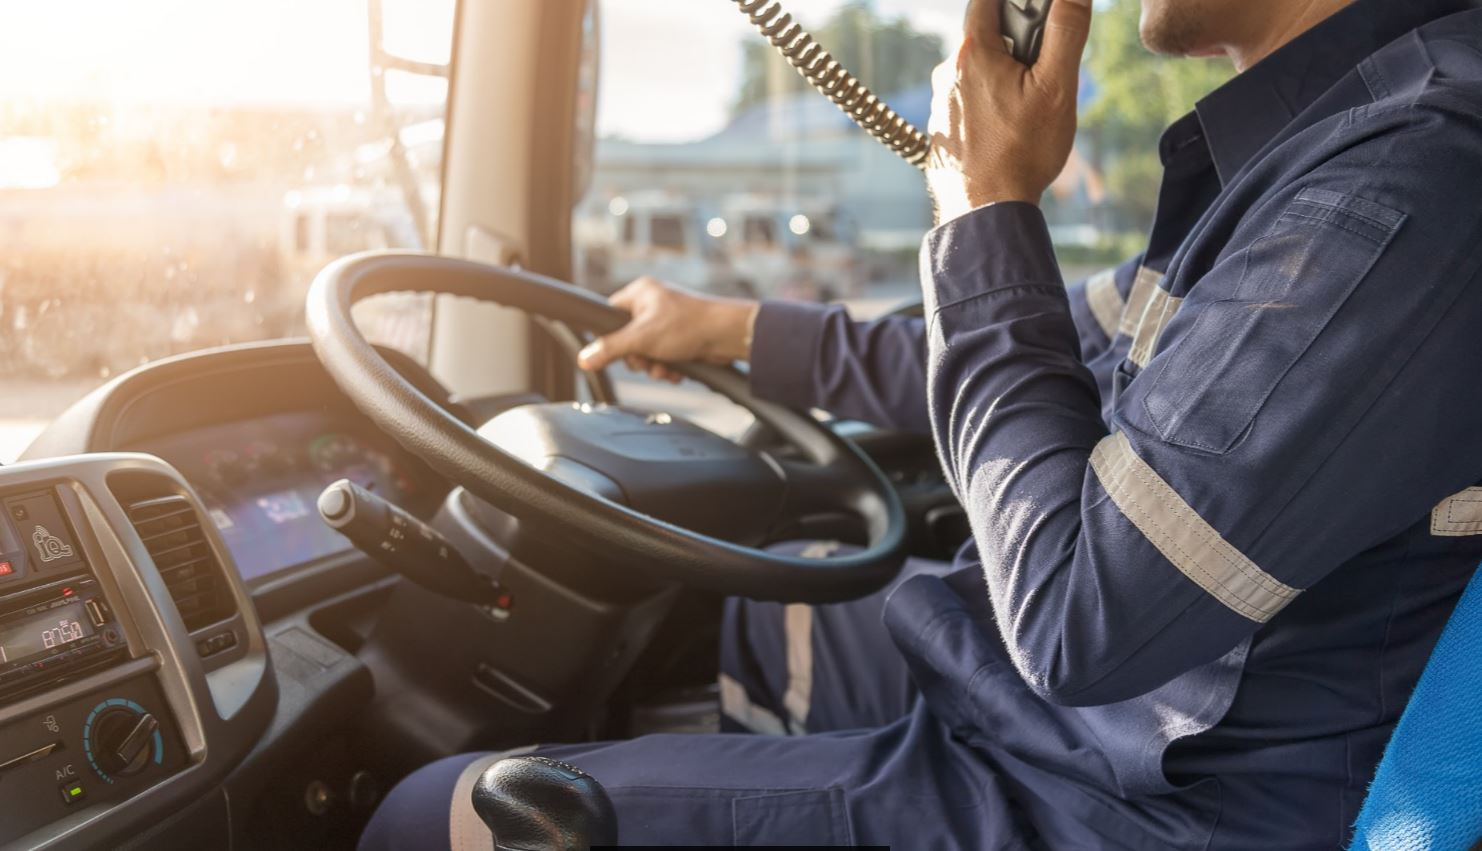 Driver at the steering wheel talking on radio dispatch.